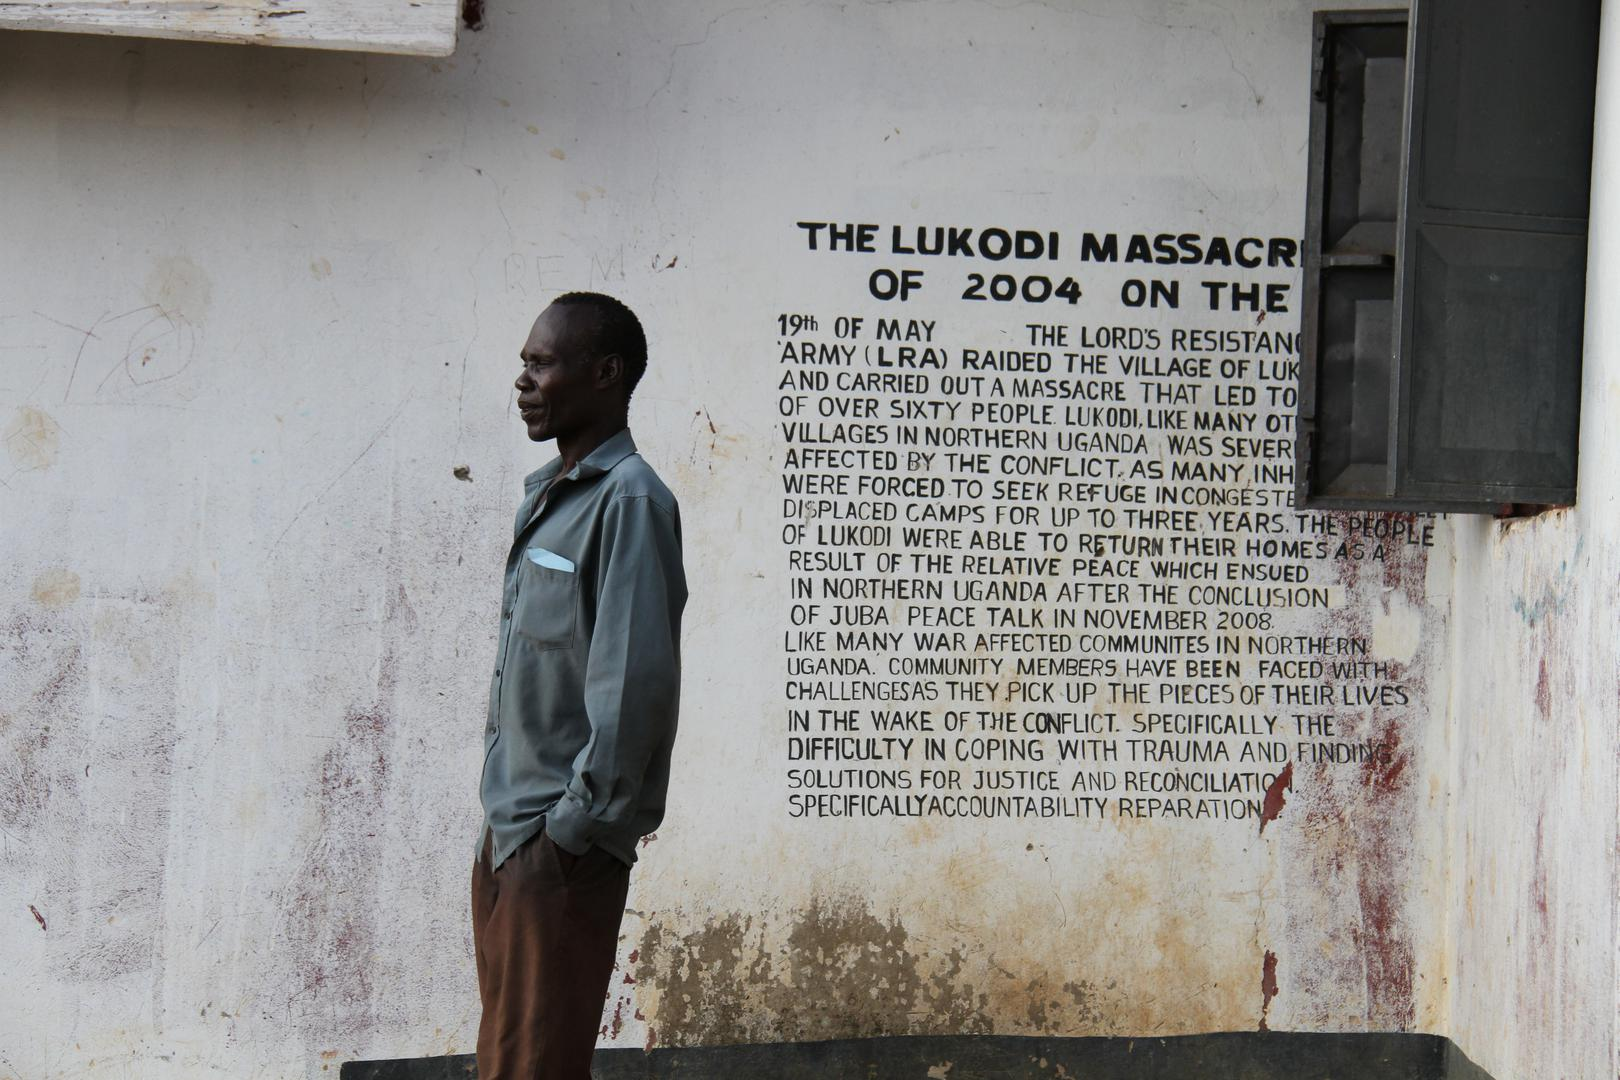 A community member in Lukodi stands next to a memorial of a May 19, 2004 massacre, one of the atrocities for which Dominic Ongwen is facing charges before the International Criminal Court. Over 4,000 victims are participating in the trial. ©2016 G. GT.